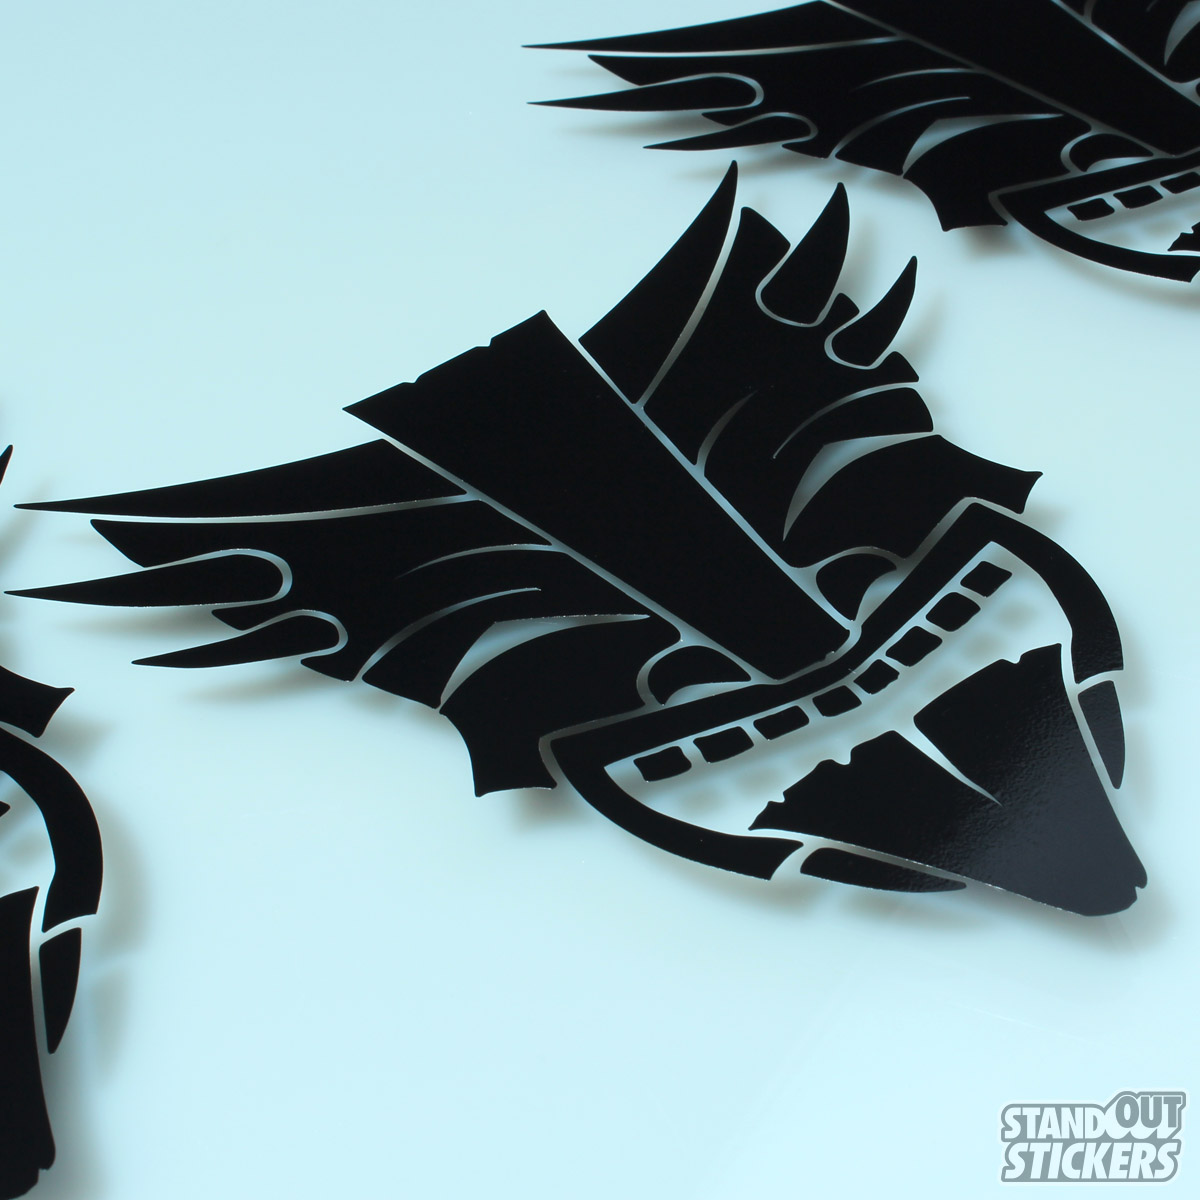 Cut vinyl decals in black